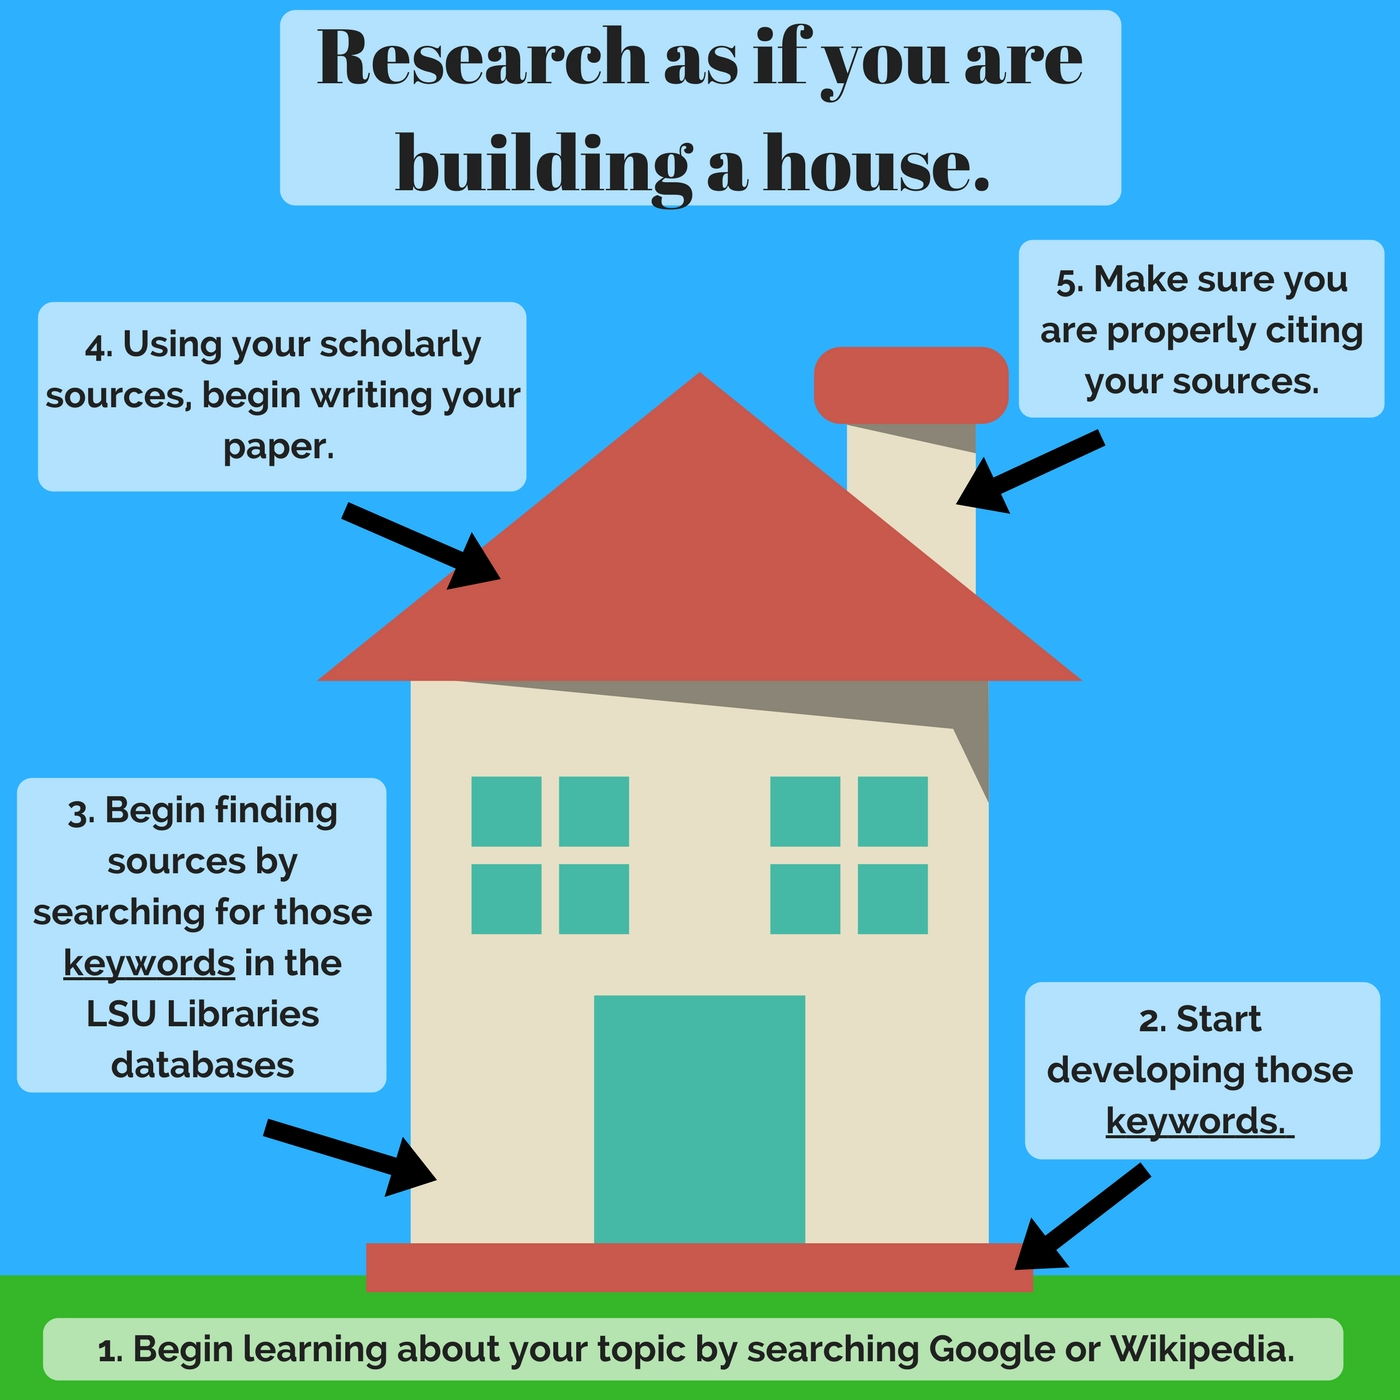 Researching is like building a house.